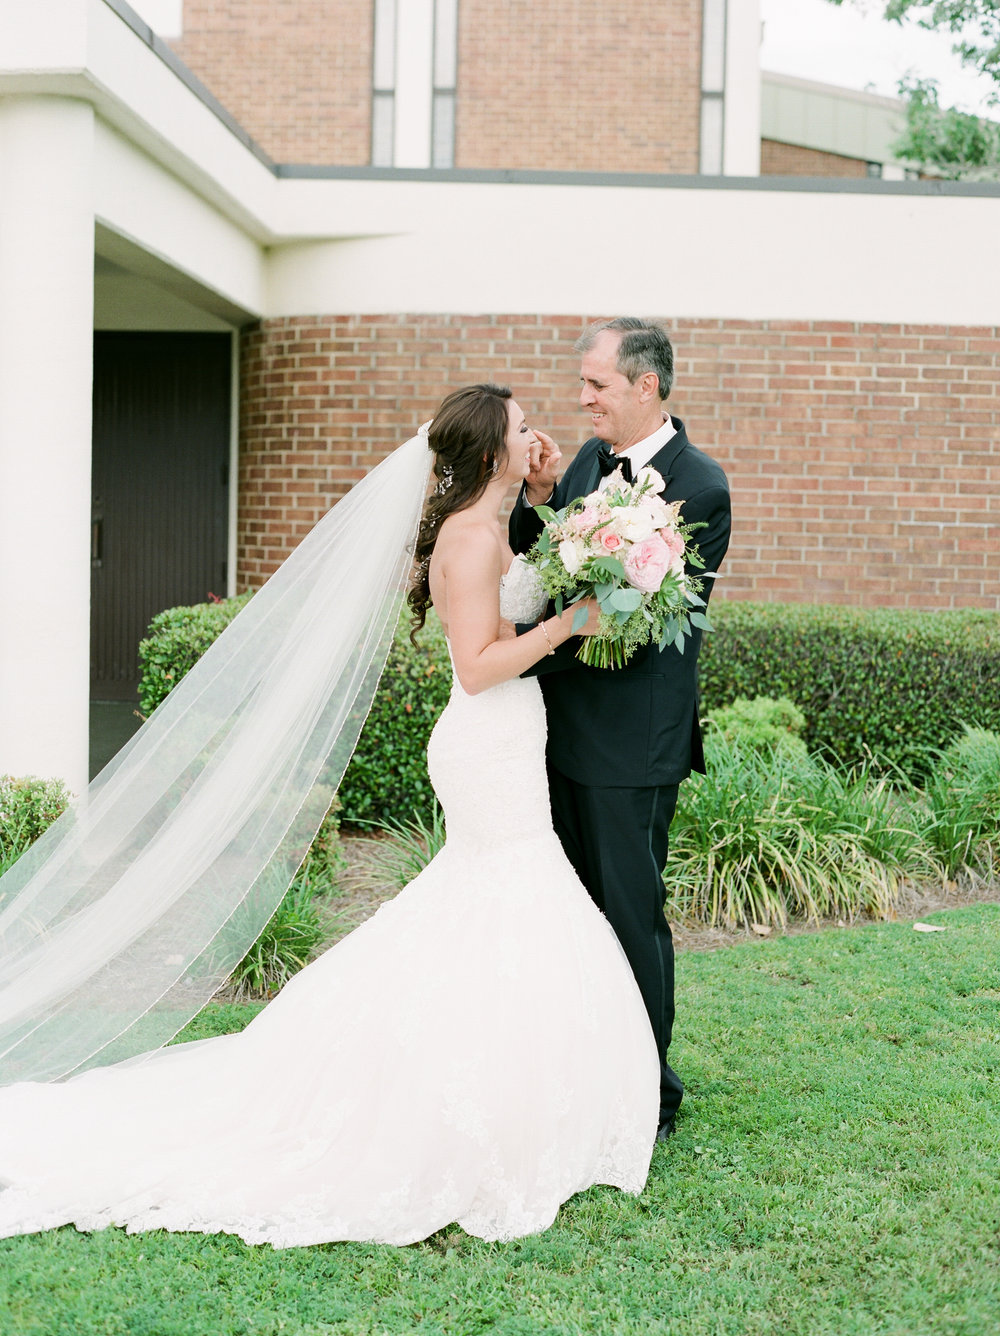 pensacola-fl-wedding-photographers-kayliebpoplinphotography